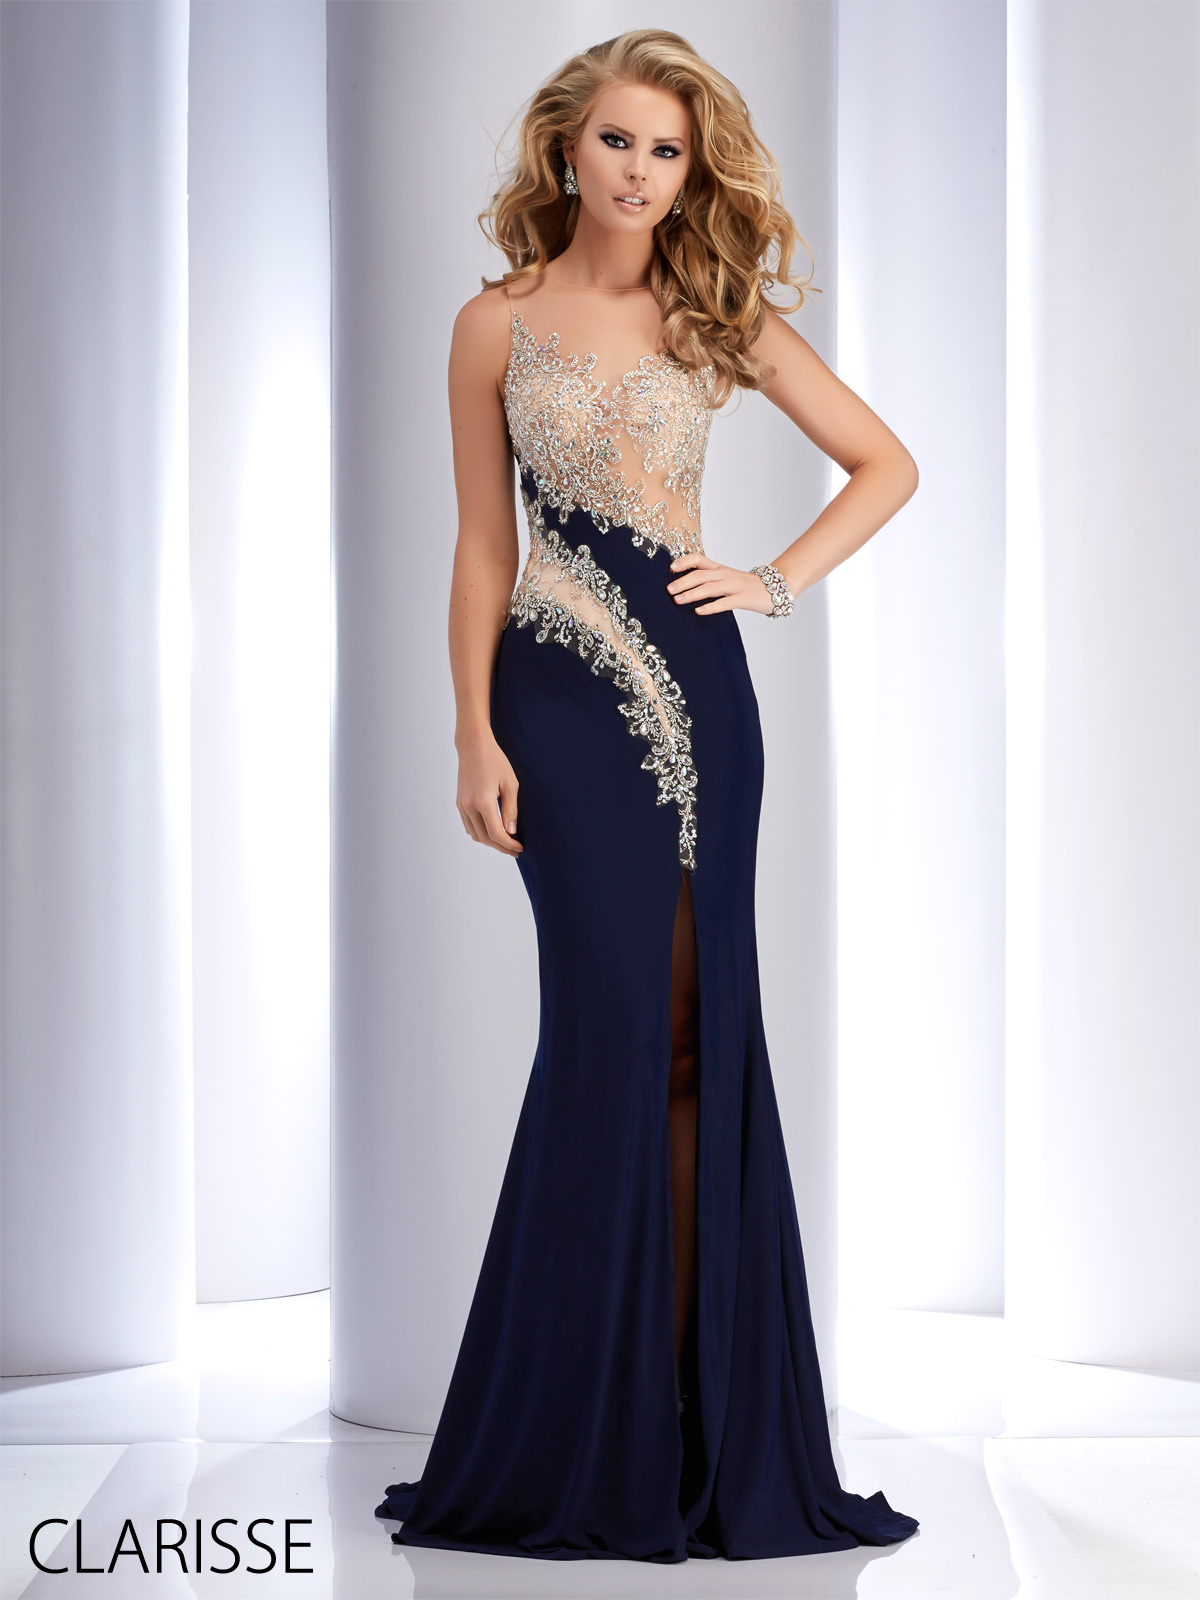 Clarisse 2016 couture prom dress style 4710 in Navy blue and ...